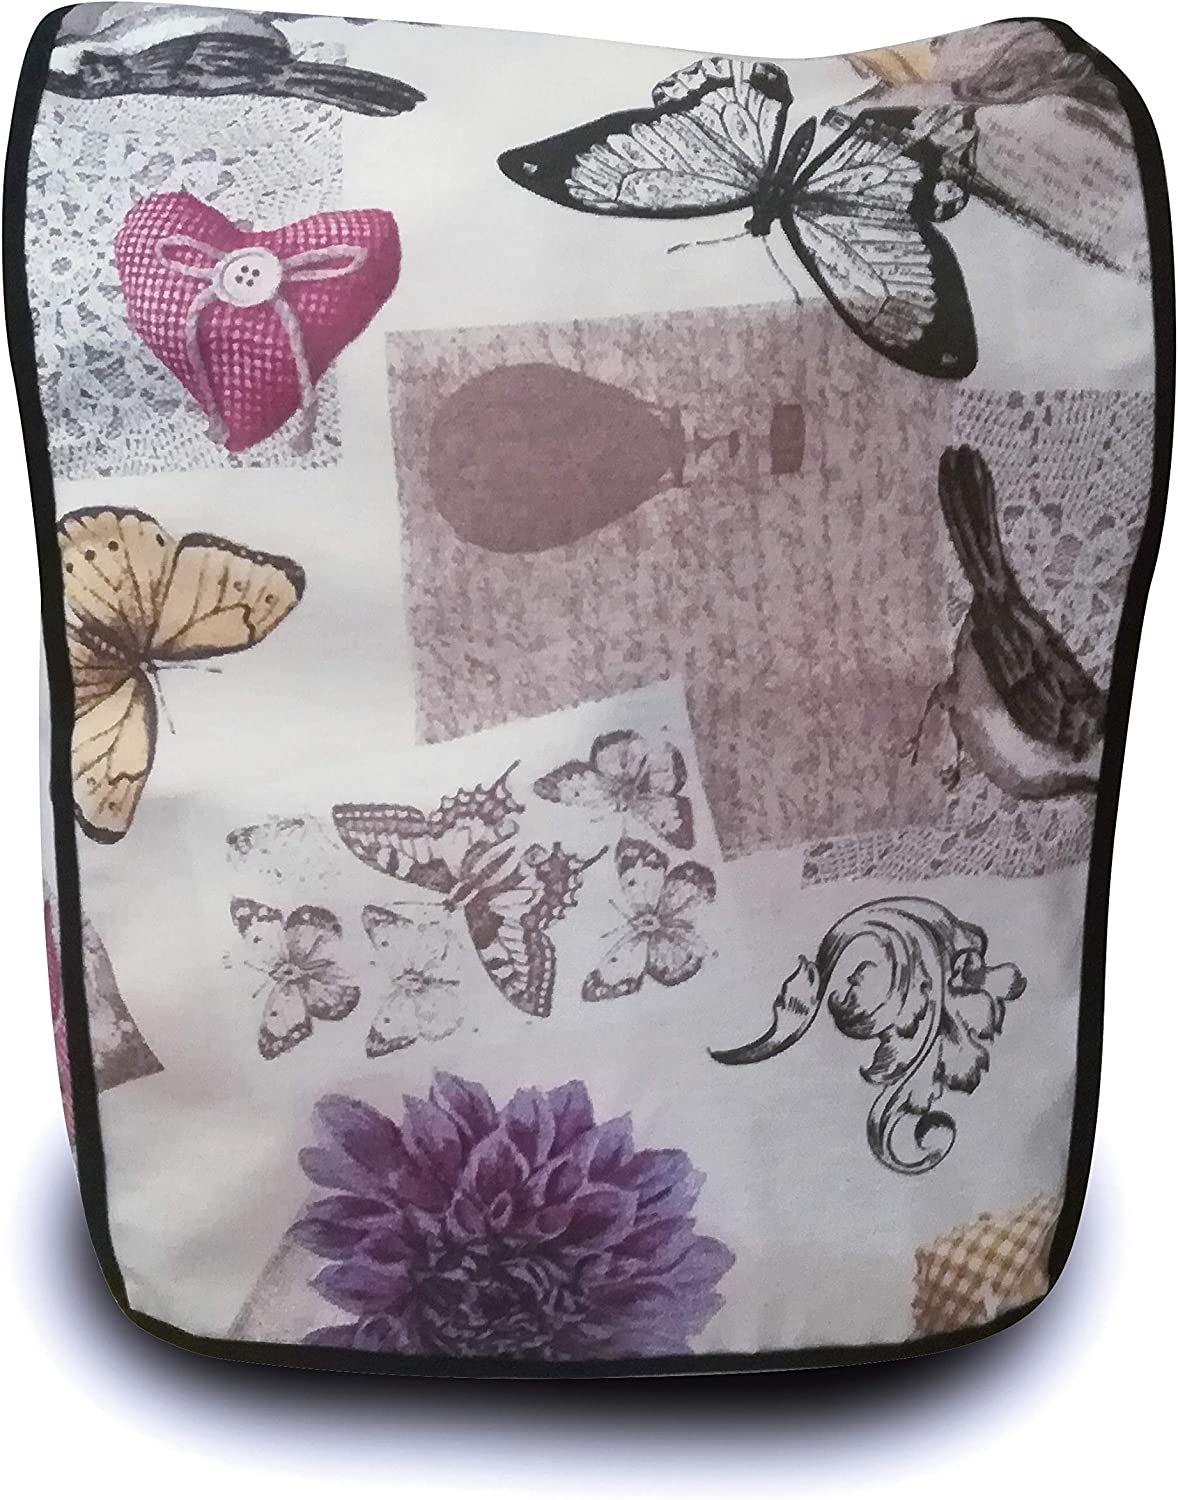 Funda antimanchas para Thermomix TM31 & TM5 & TM6 FLORES Y MARIPOSAS: Amazon.es: Hogar